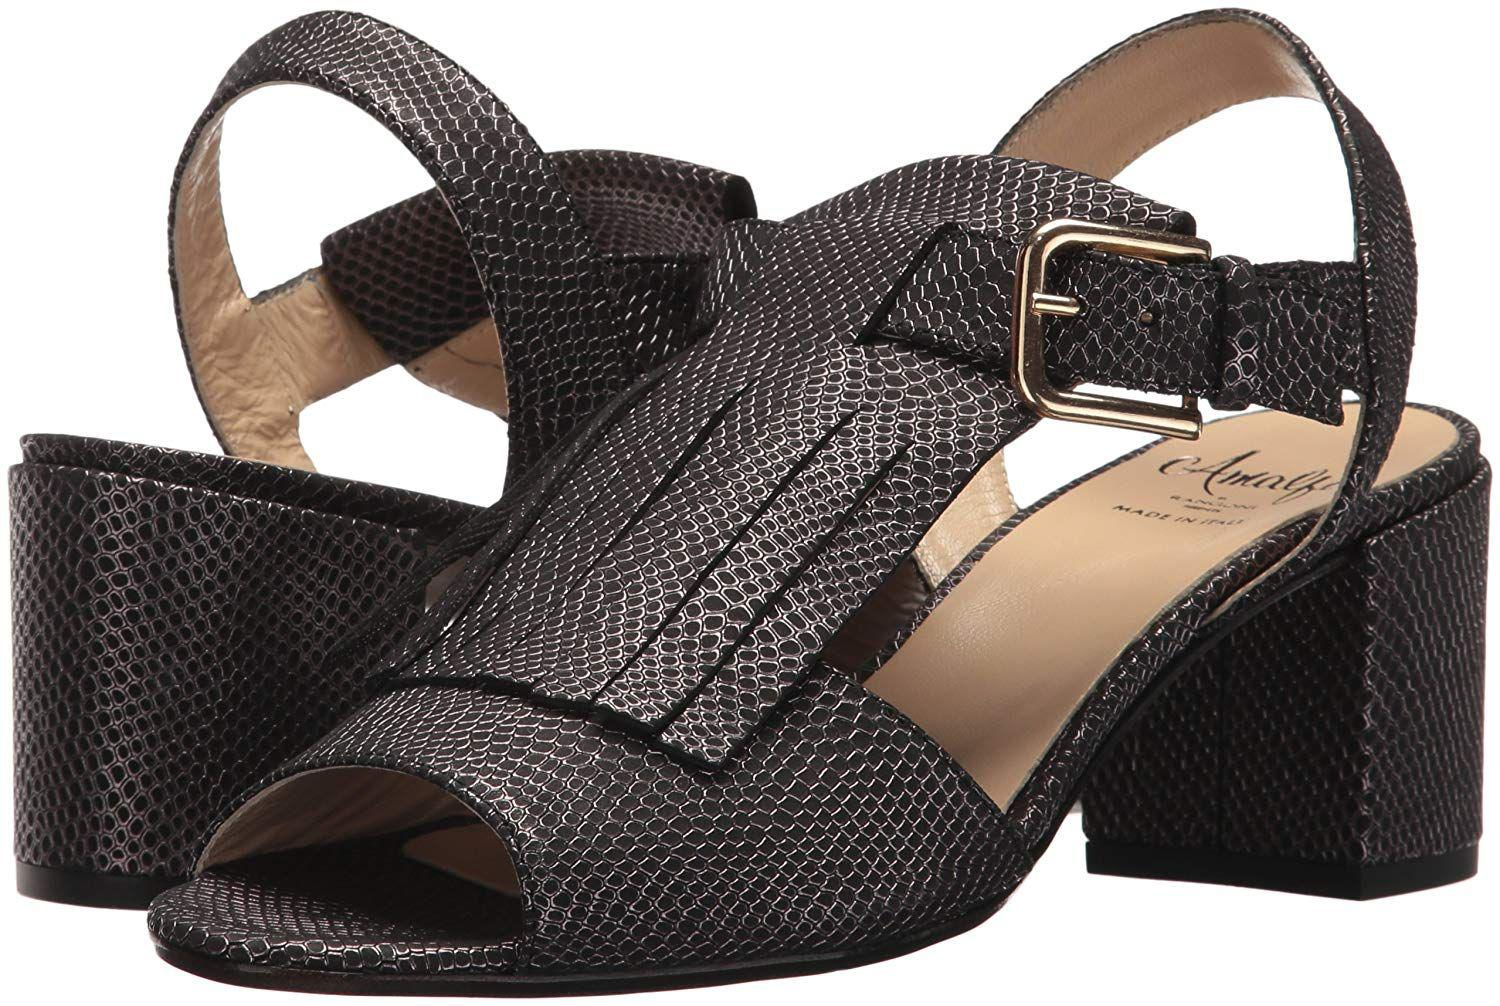 Lyst Amalfi By By By Rangoni Damenschuhe Lucciola Peep Toe Casual T strap Sandales a1711d